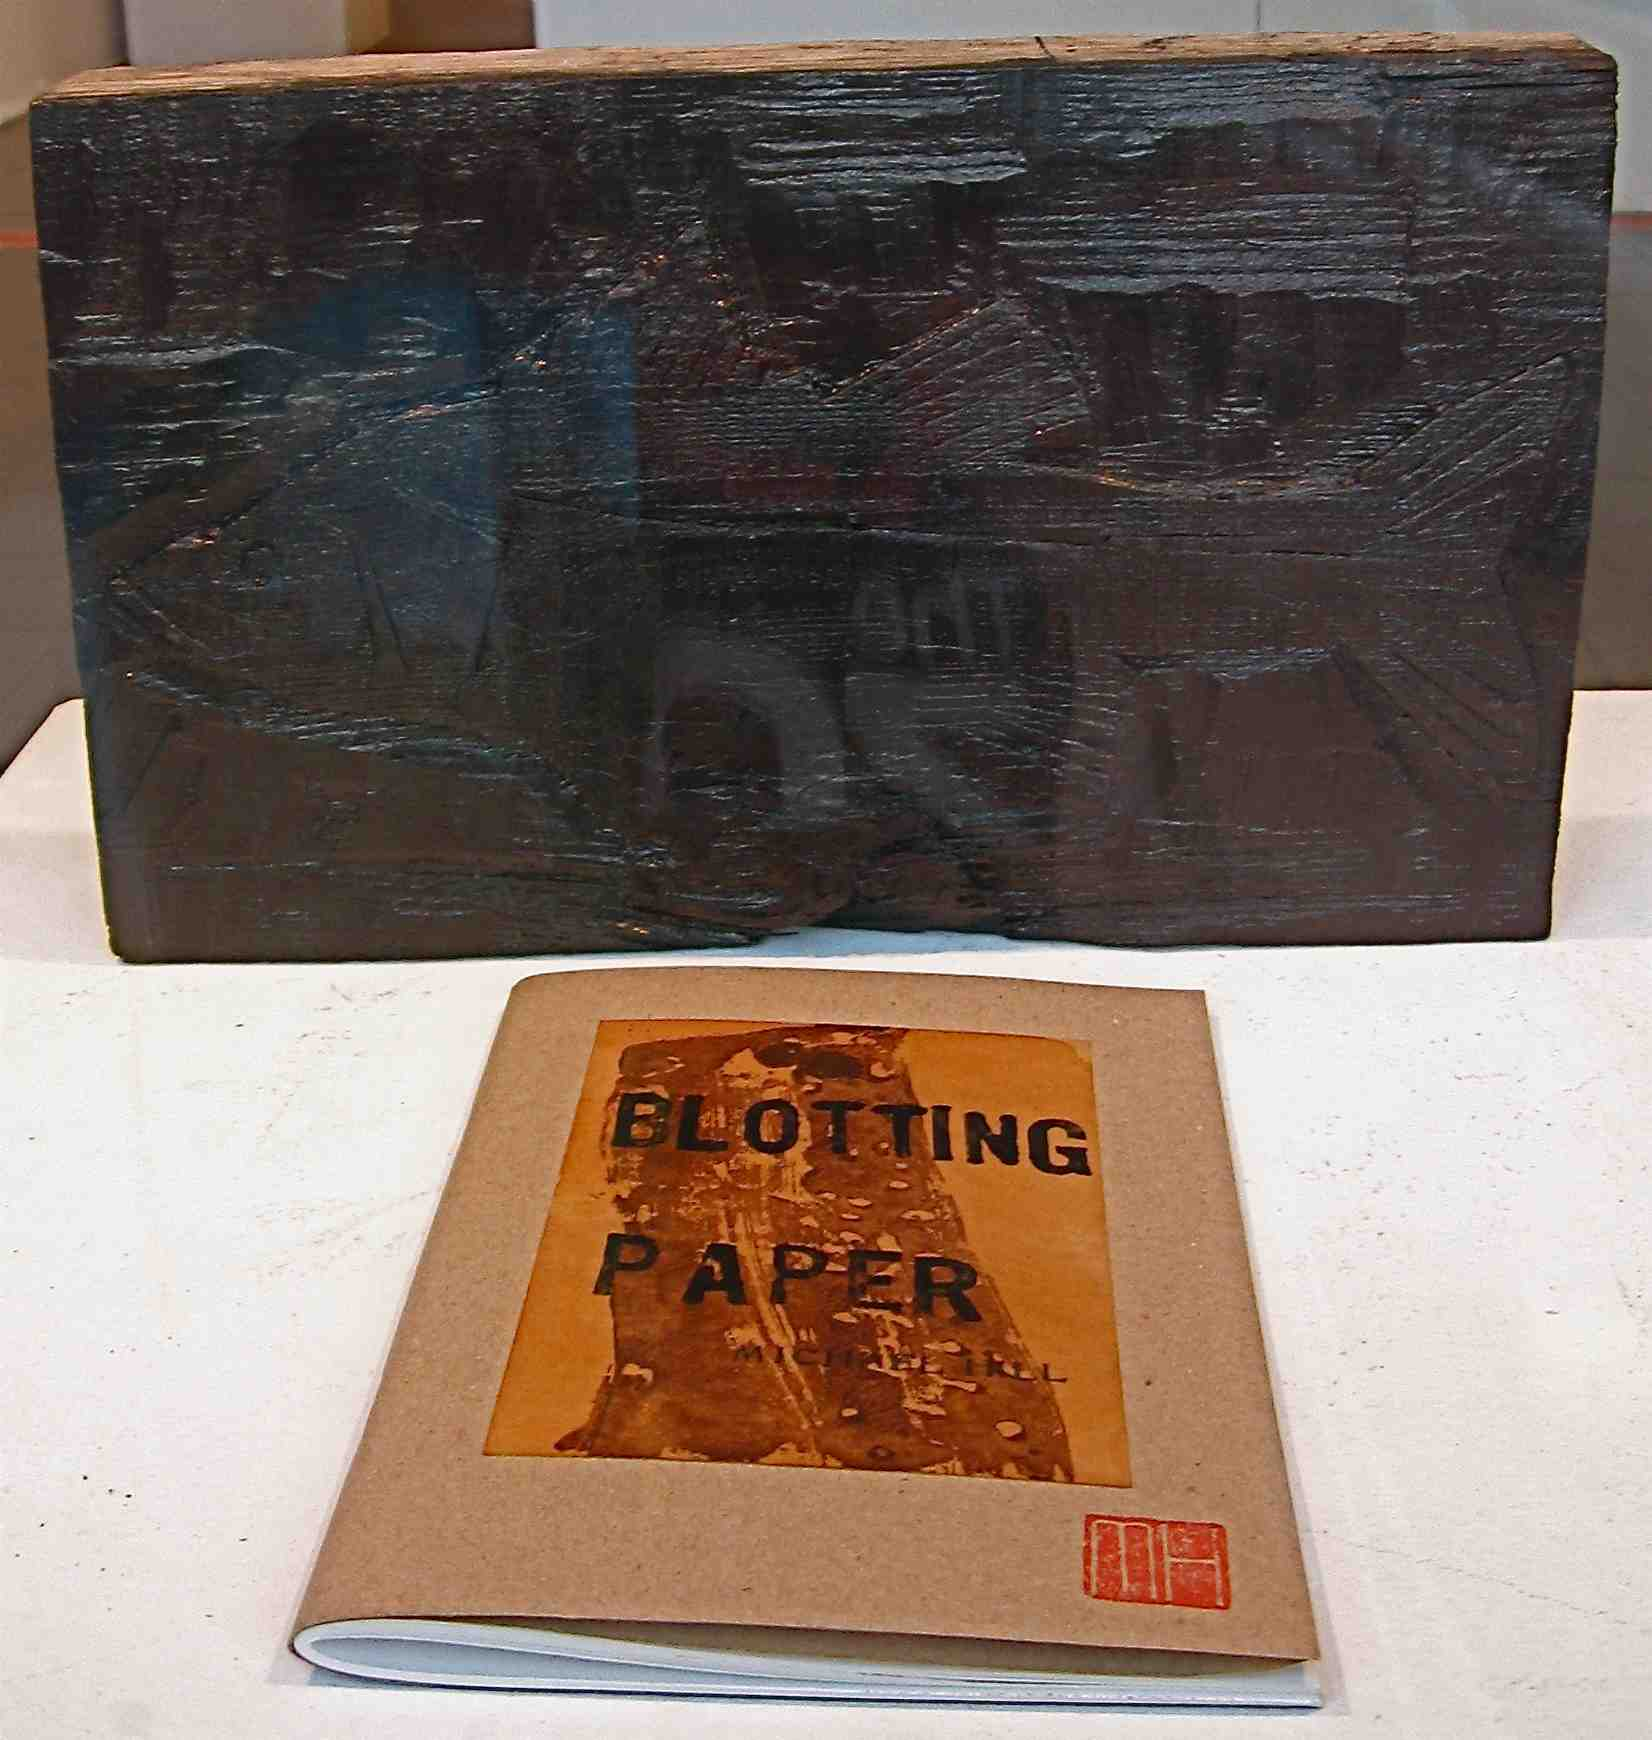 blotter paper Video shows what blotting paper means absorbent paper used to dry ink blotting paper meaning how to pronounce, definition audio dictionary how to say bl.